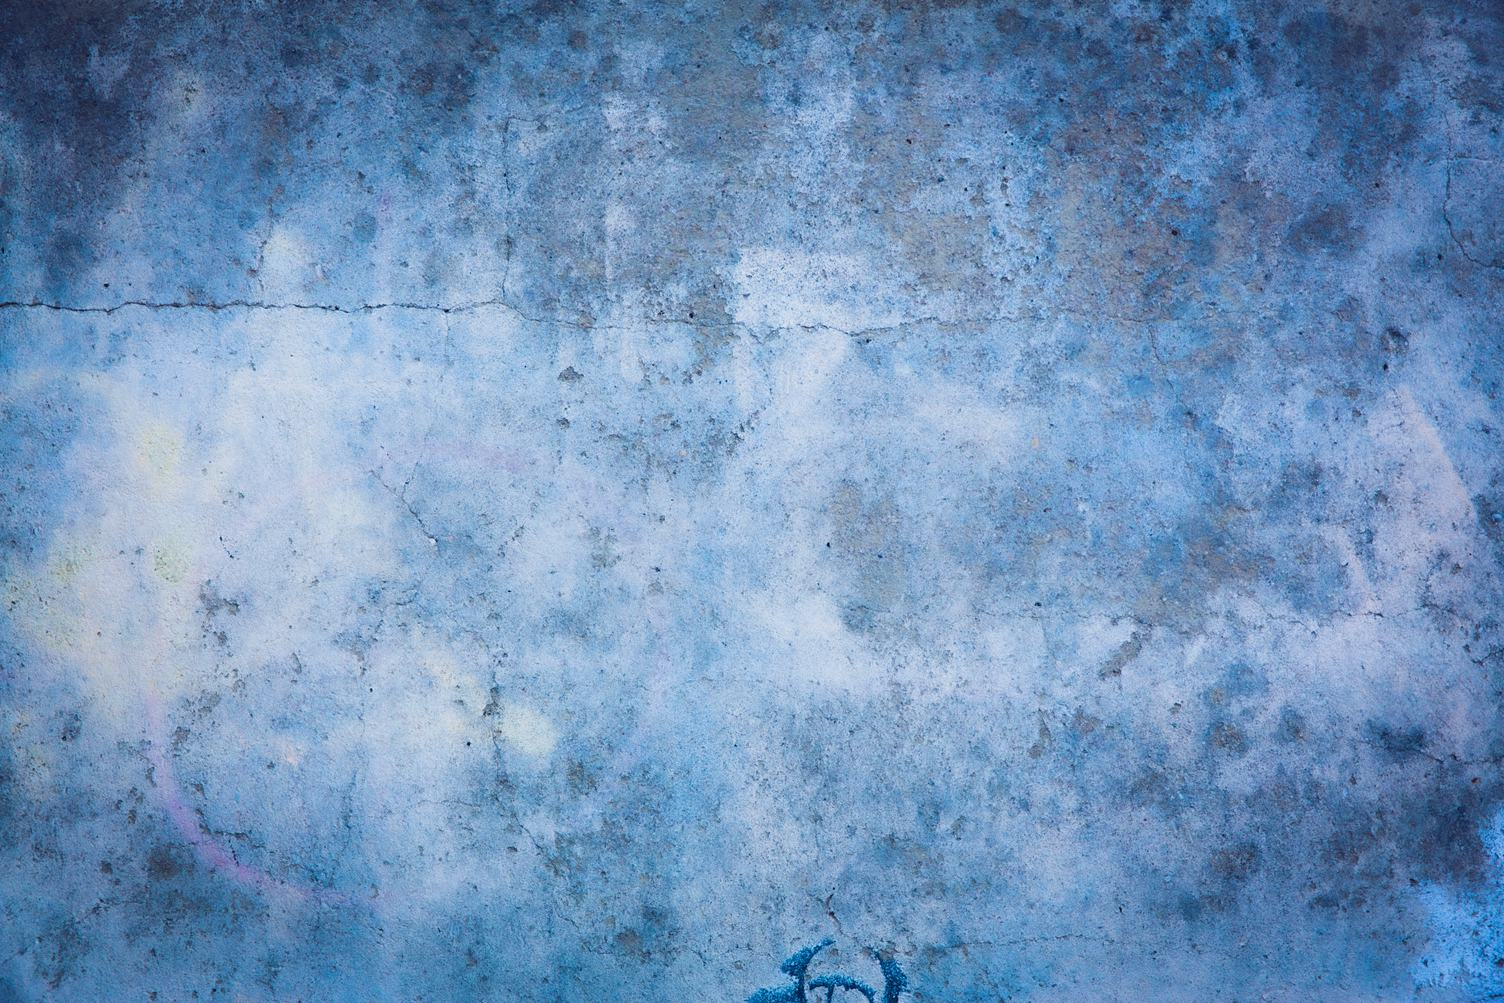 Blue Grunge Cracked Wall Texture